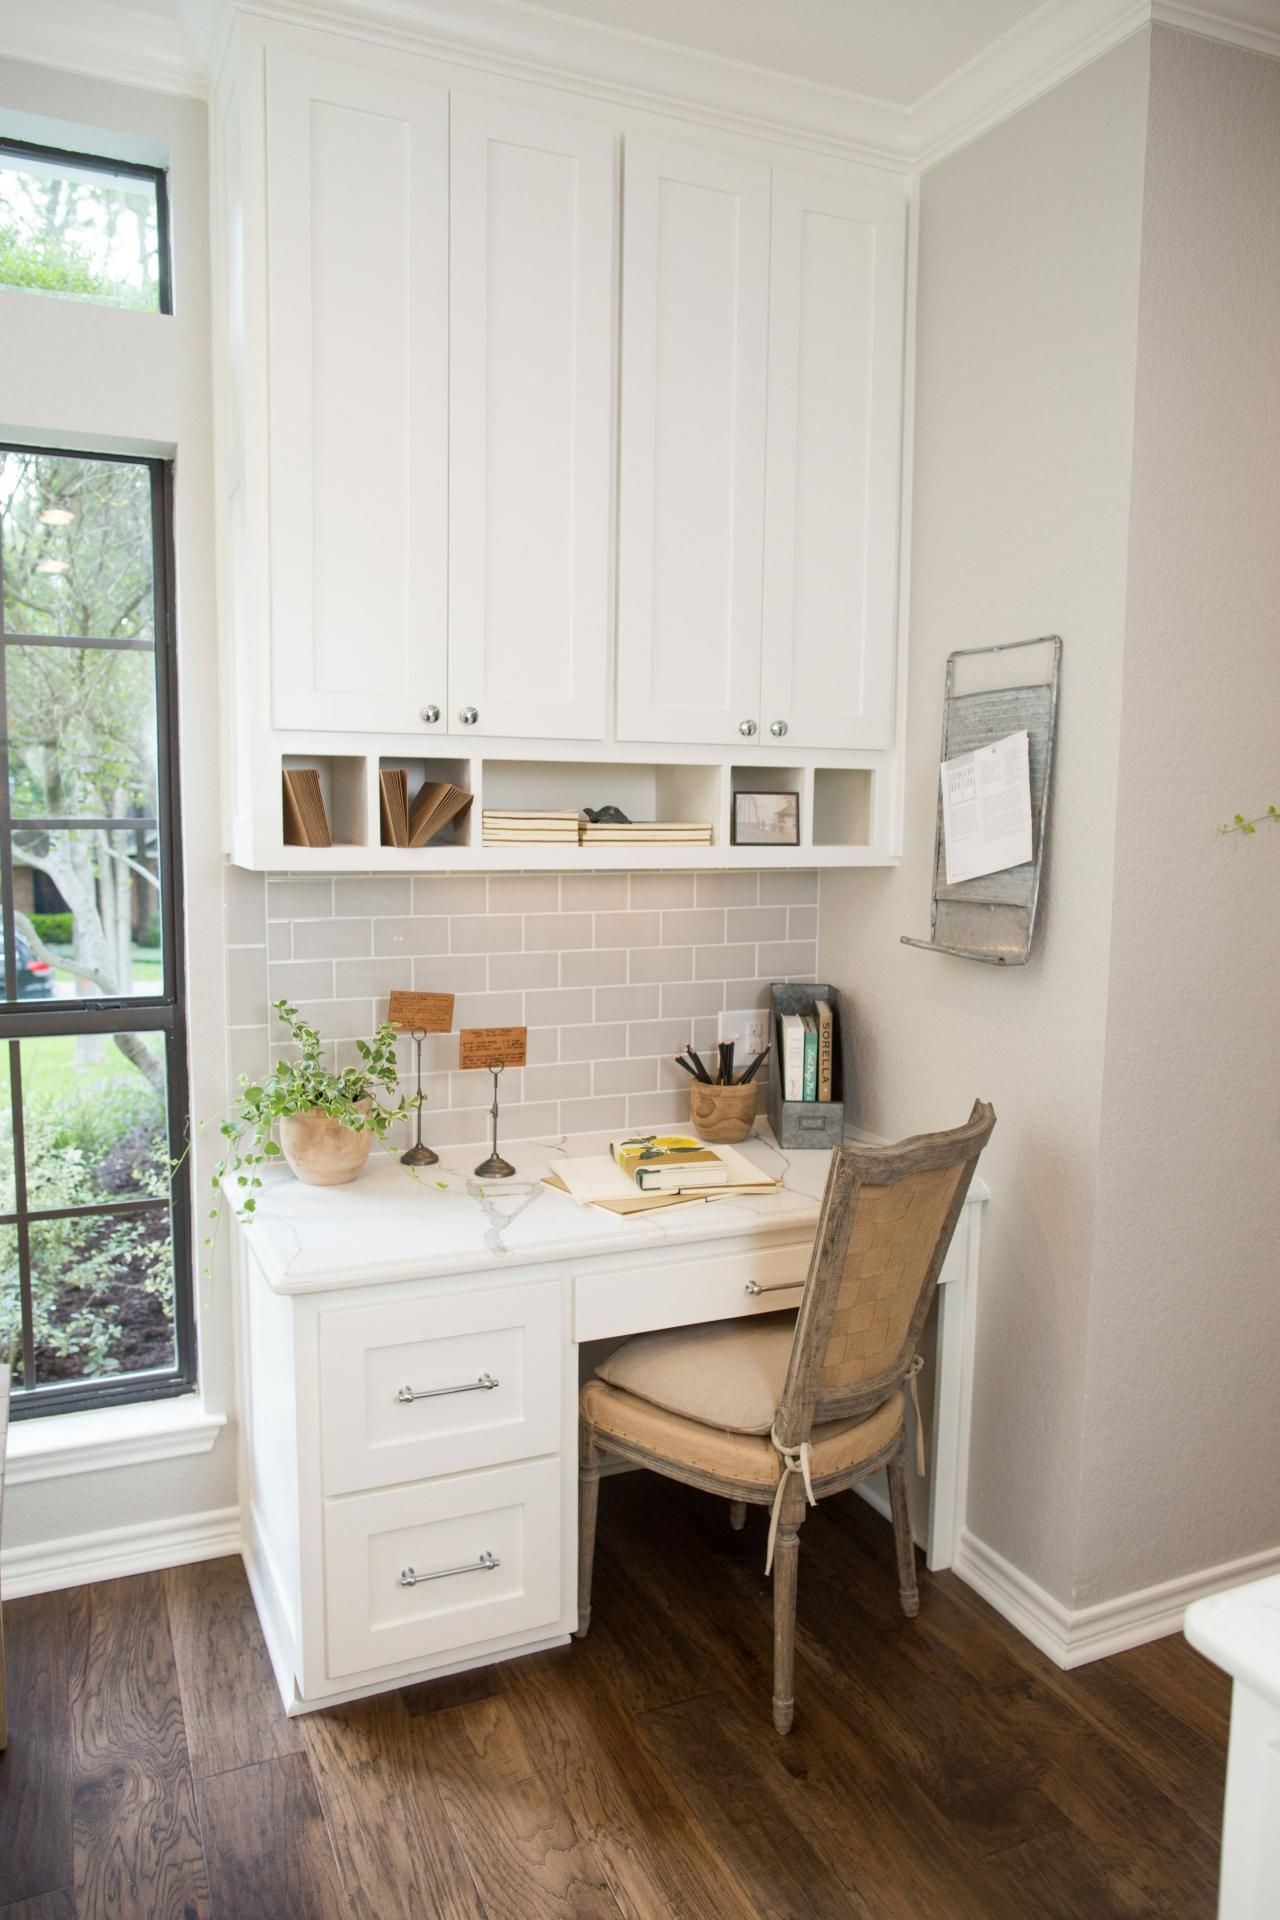 Find the best of Fixer Upper from HGTV | Home | Pinterest | Hgtv ...